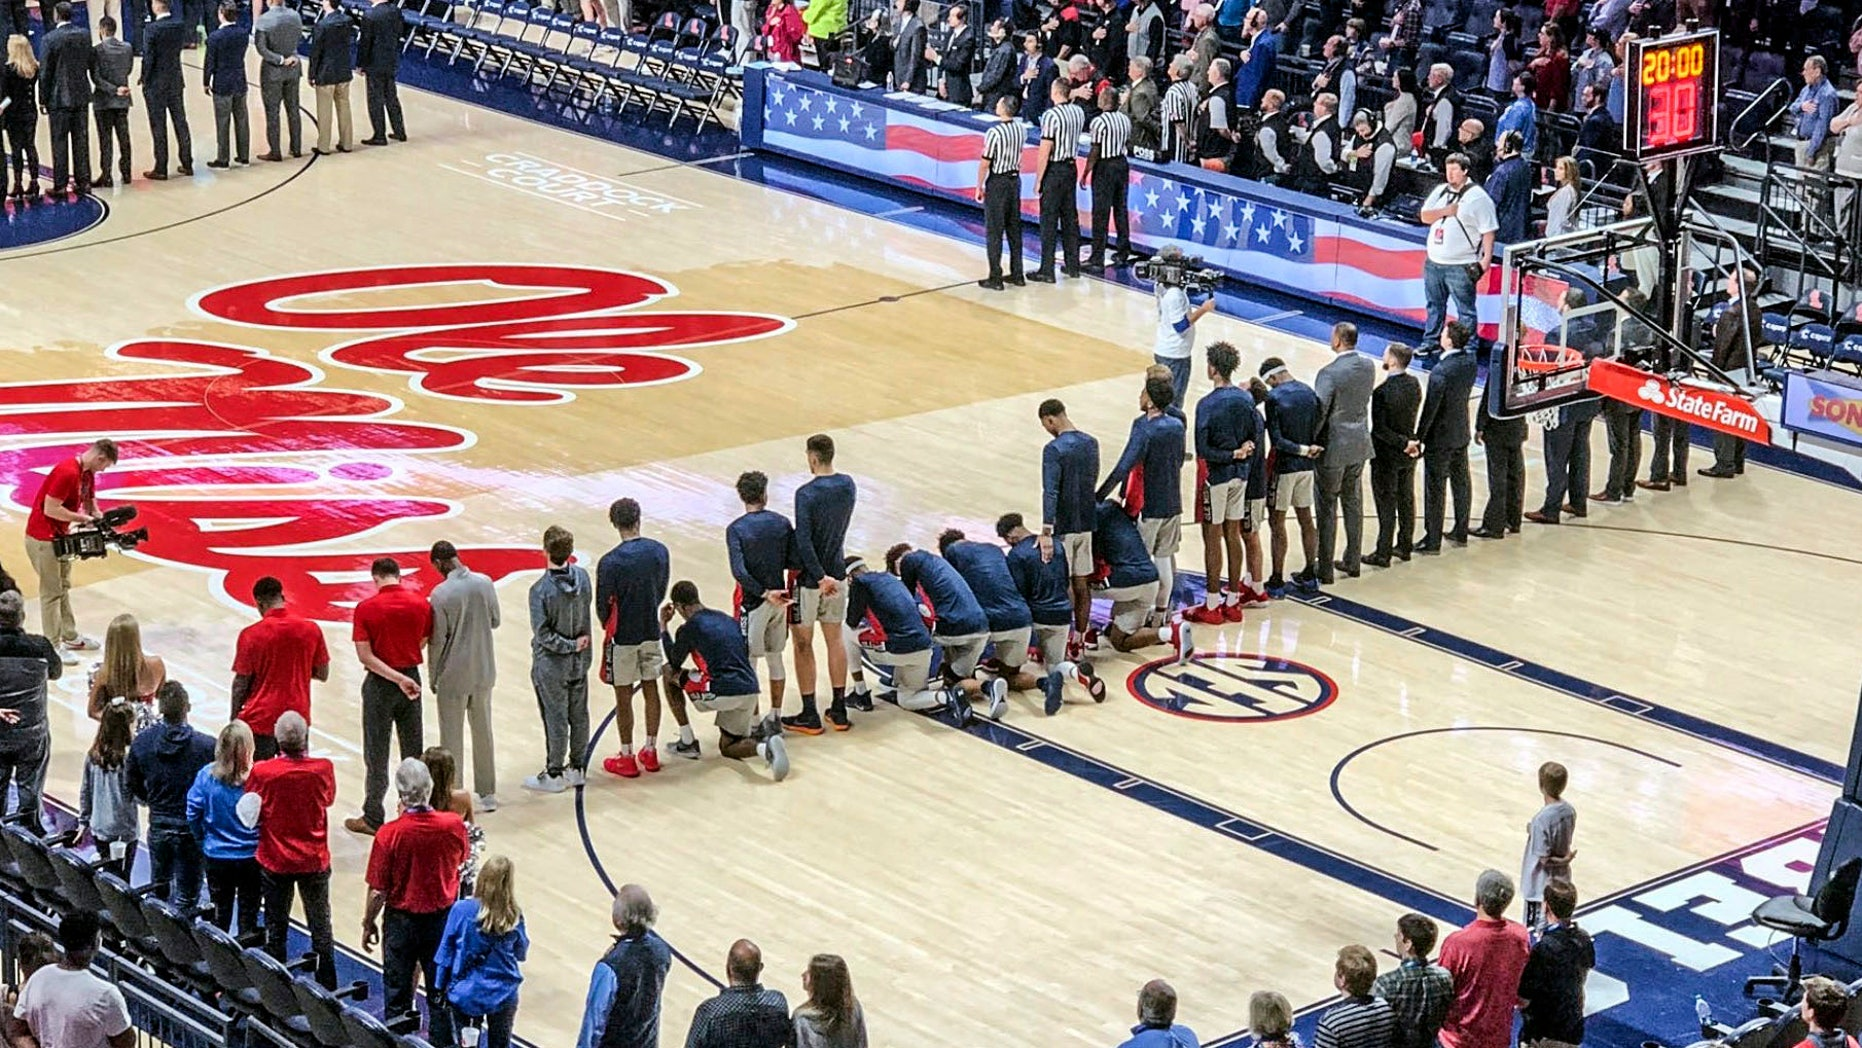 Six Mississippi basketball players take a knee during the national anthem before an NCAA college basketball game against Georgia in Oxford on Saturday.